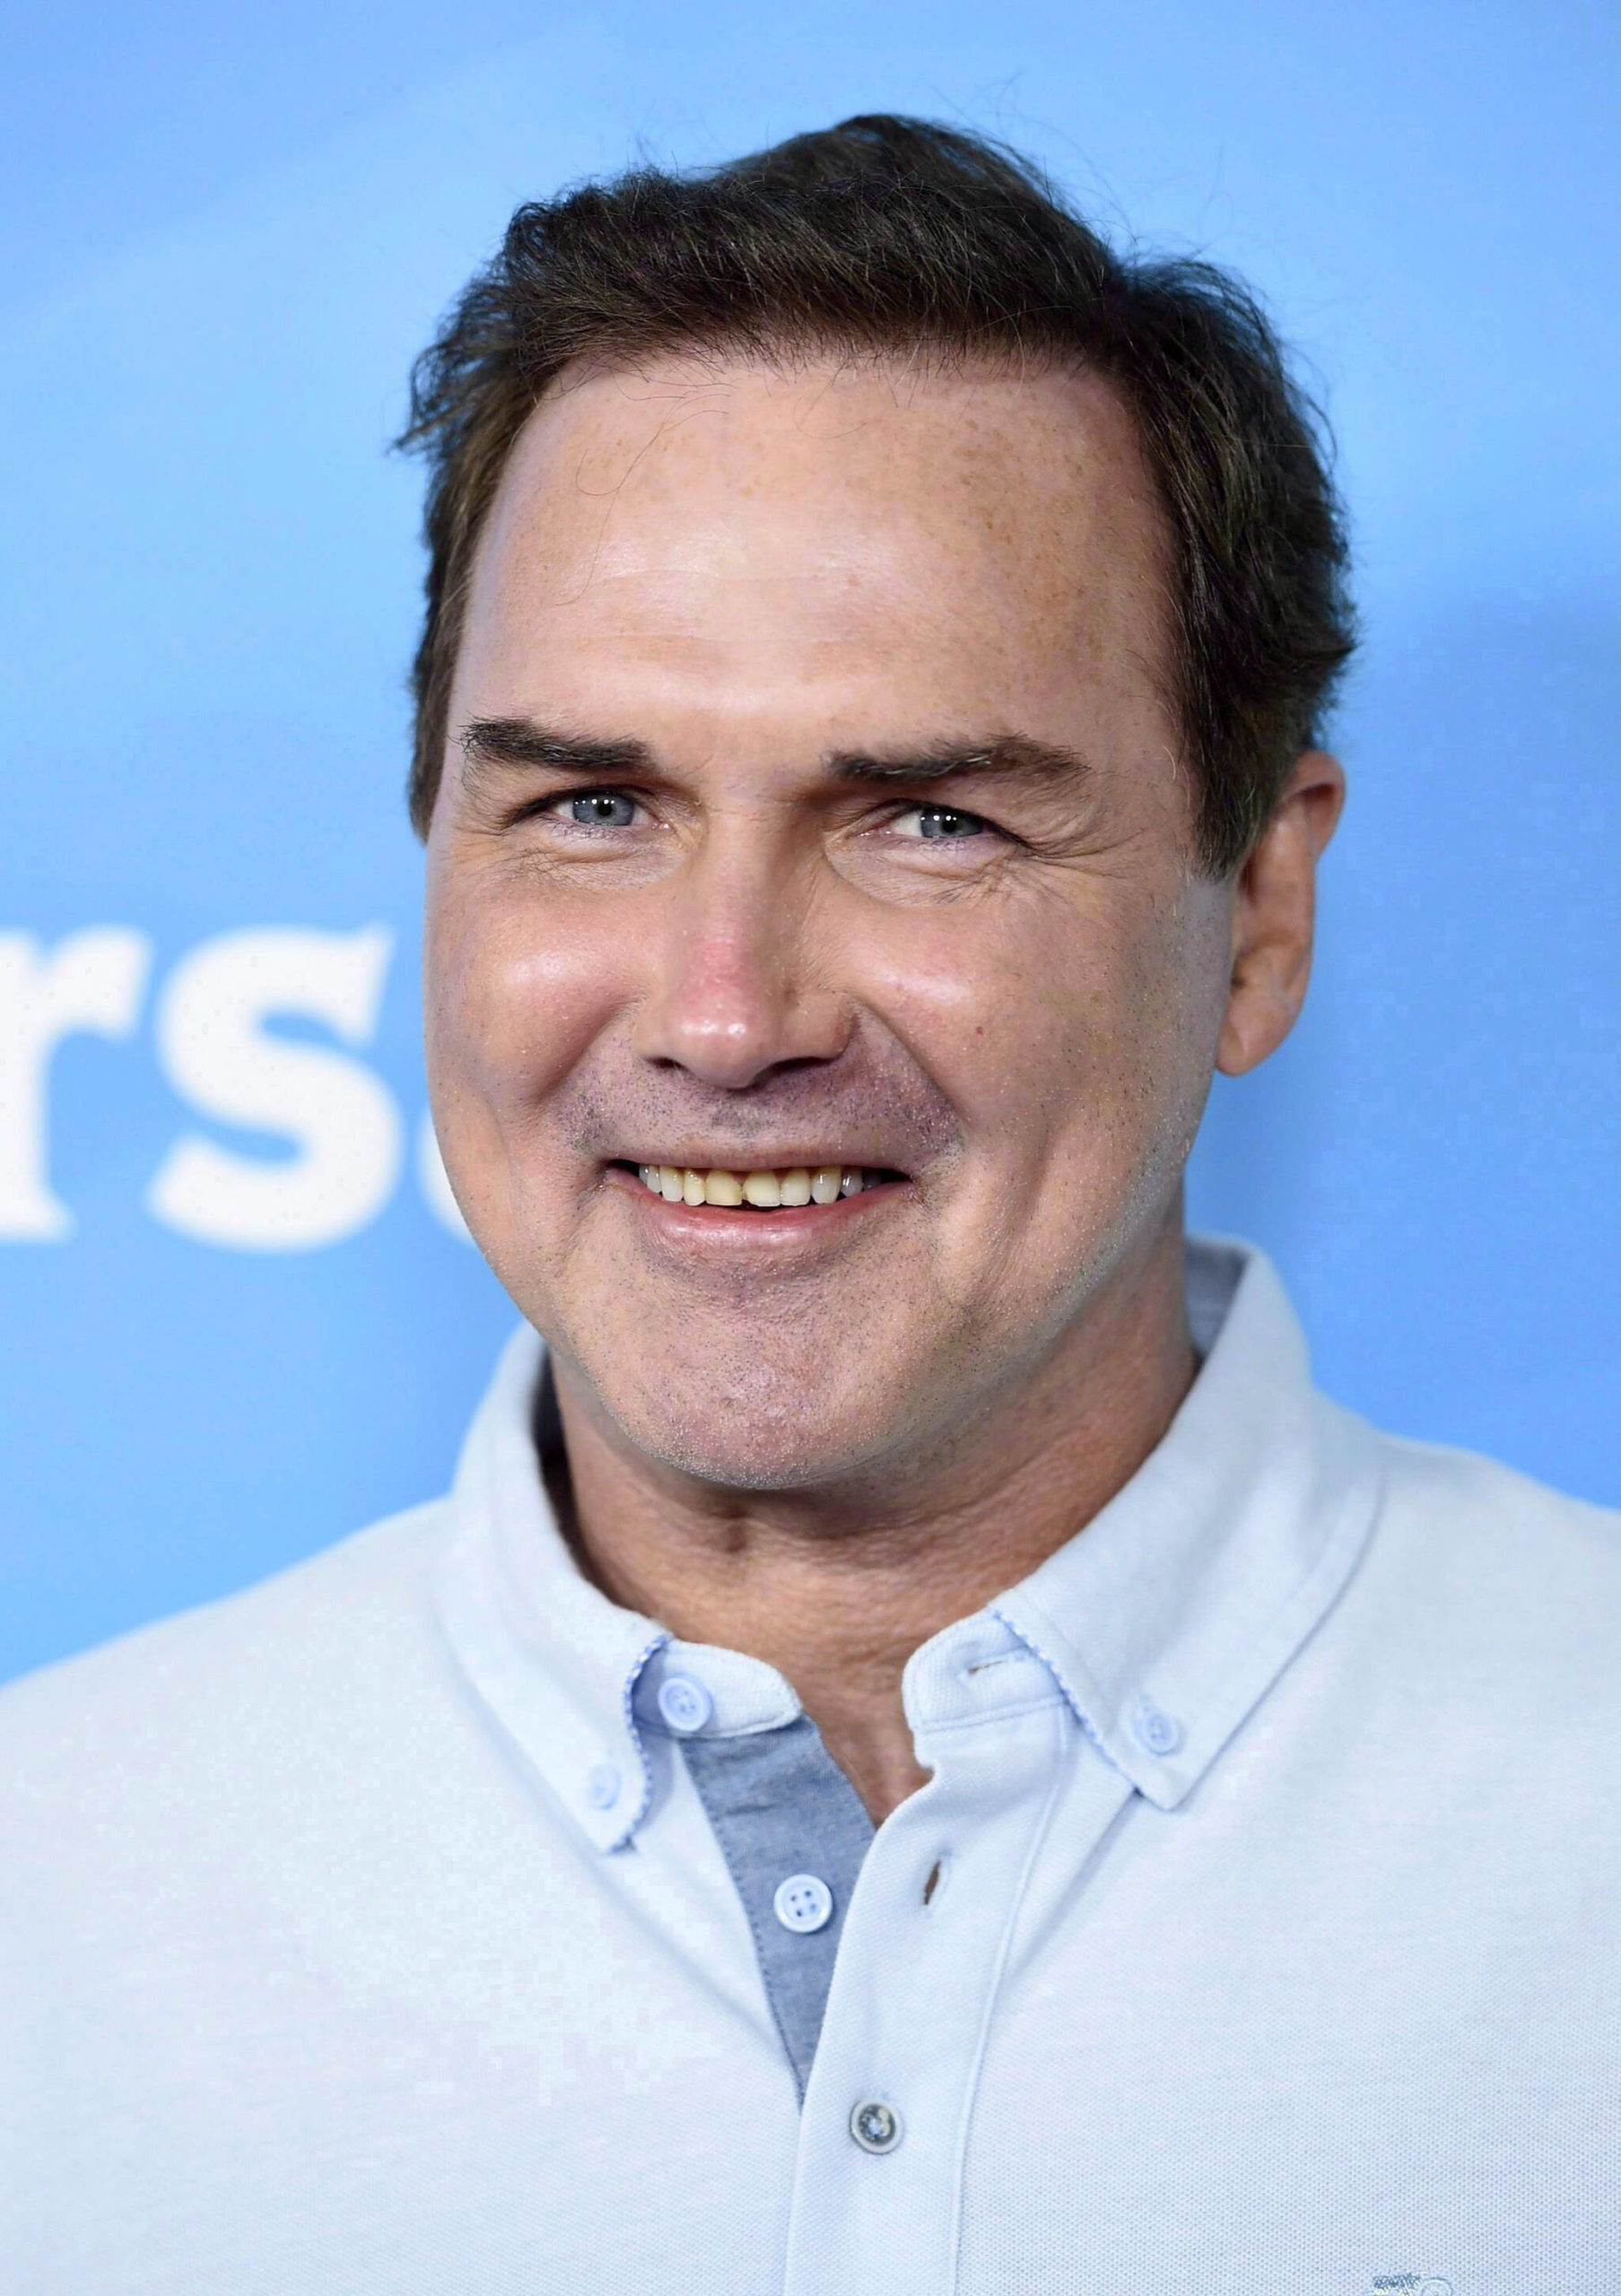 Norm Macdonald arrives at the NBC Universal Summer Press Day at The Langham Huntington Hotel on April 2, 2015, in Pasadena, Calif. THE CANADIAN PRESS/AP, Invision - Chris Pizzello